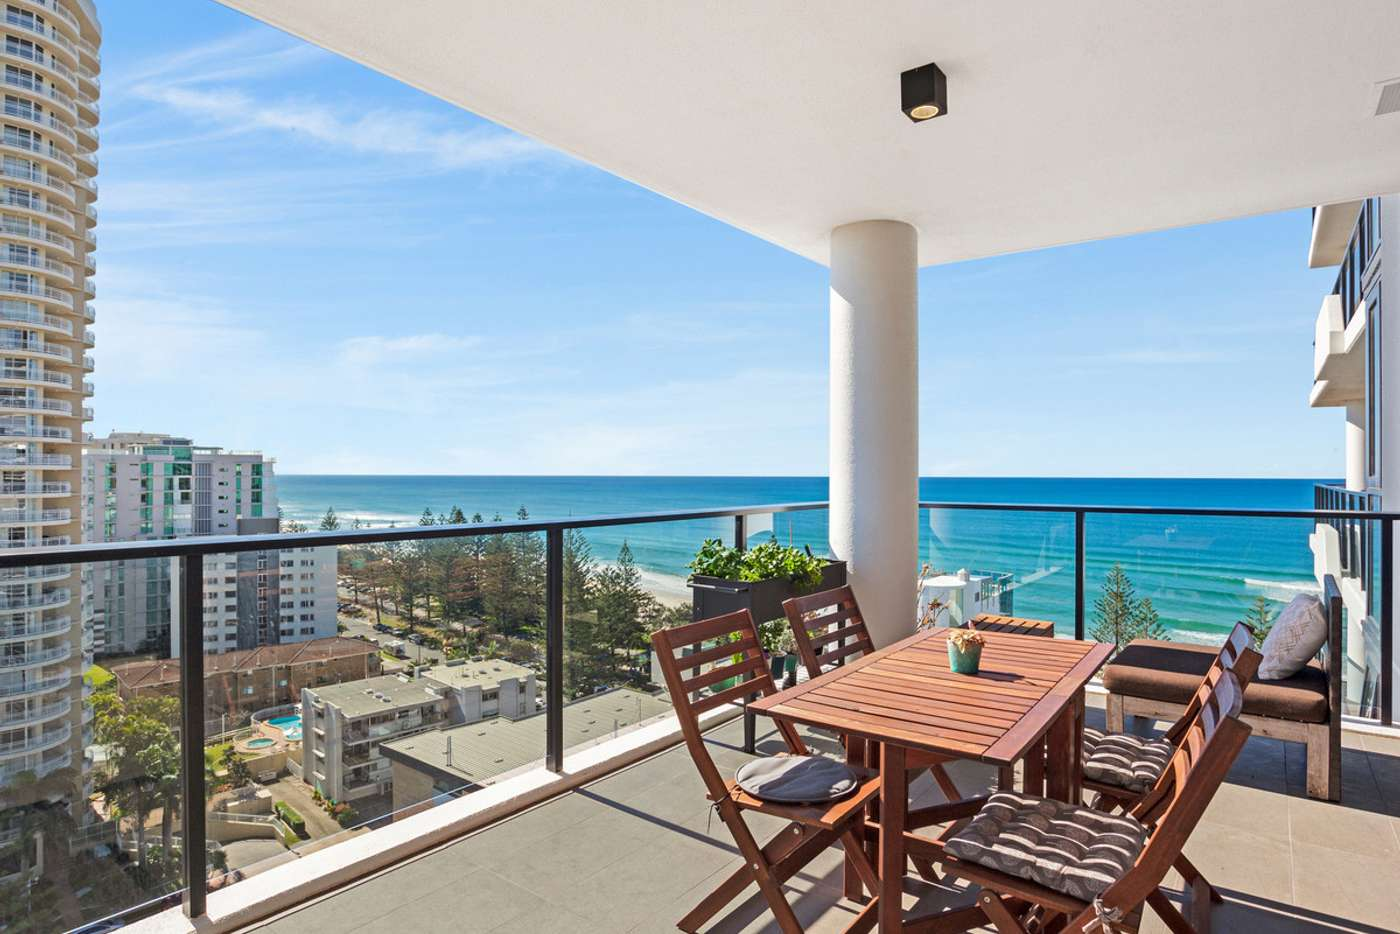 Main view of Homely apartment listing, 83/72 The Esplanade, Burleigh Heads QLD 4220